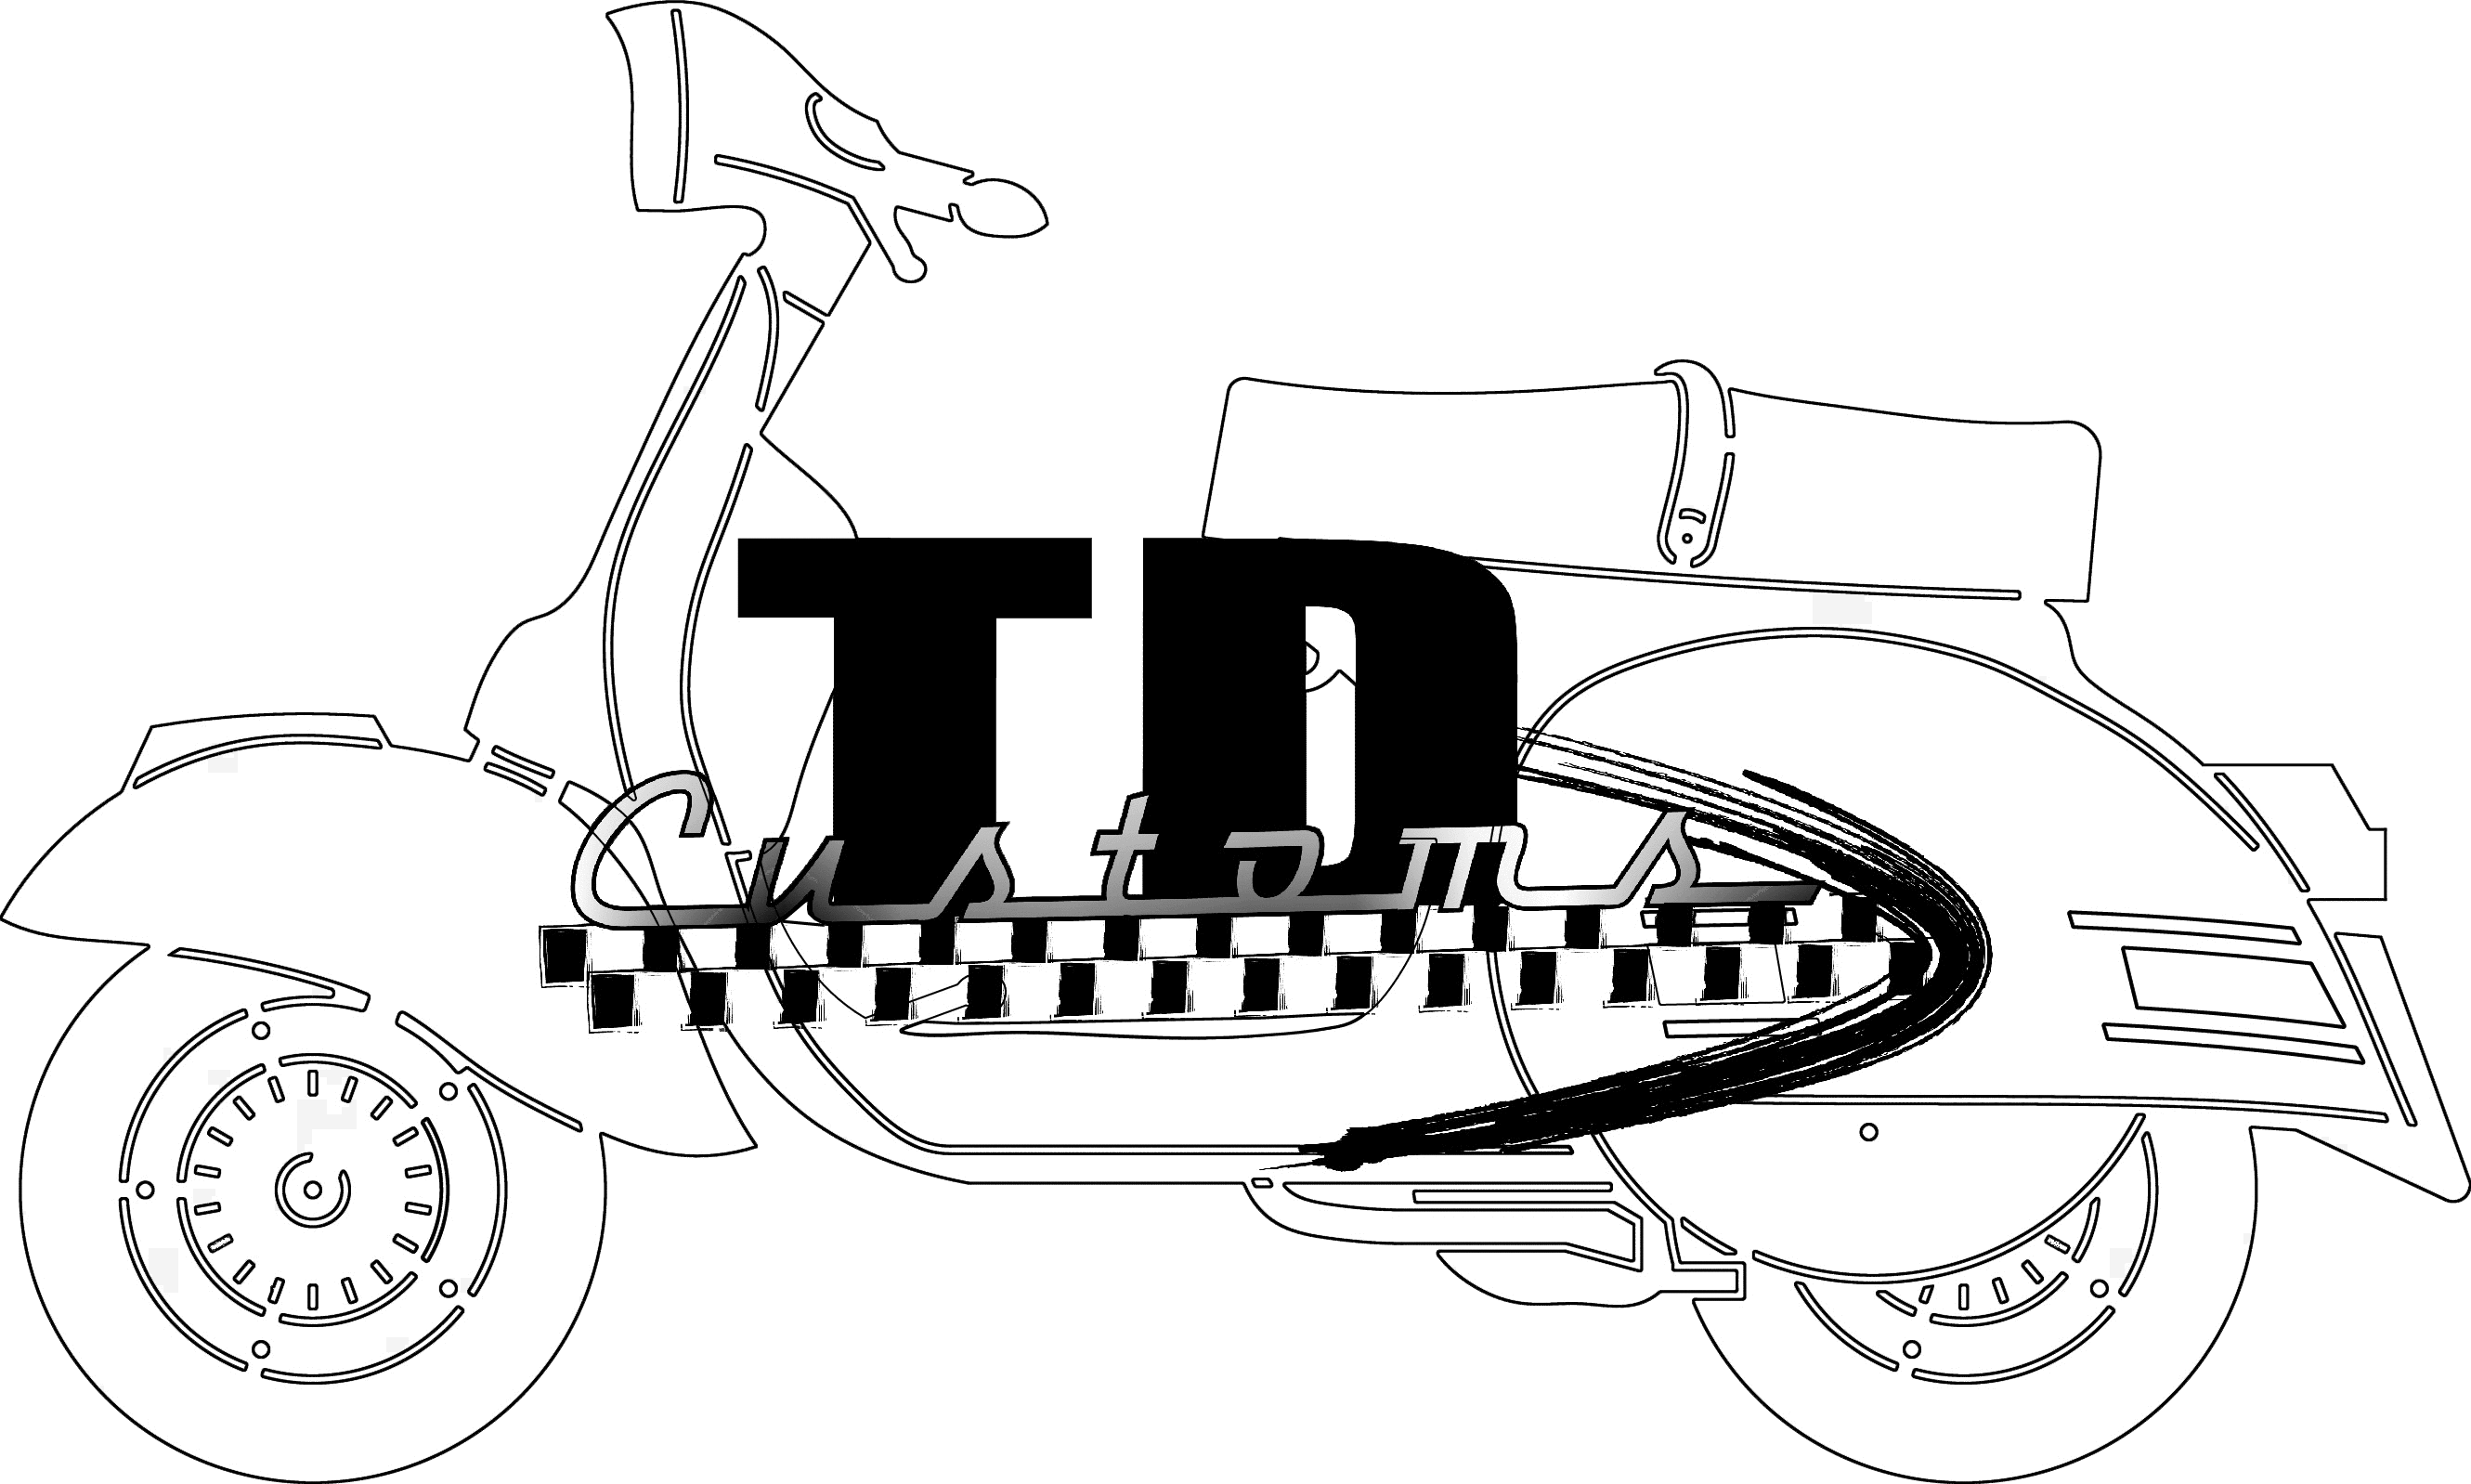 Td customs everything about. Scooter clipart scooter lambretta